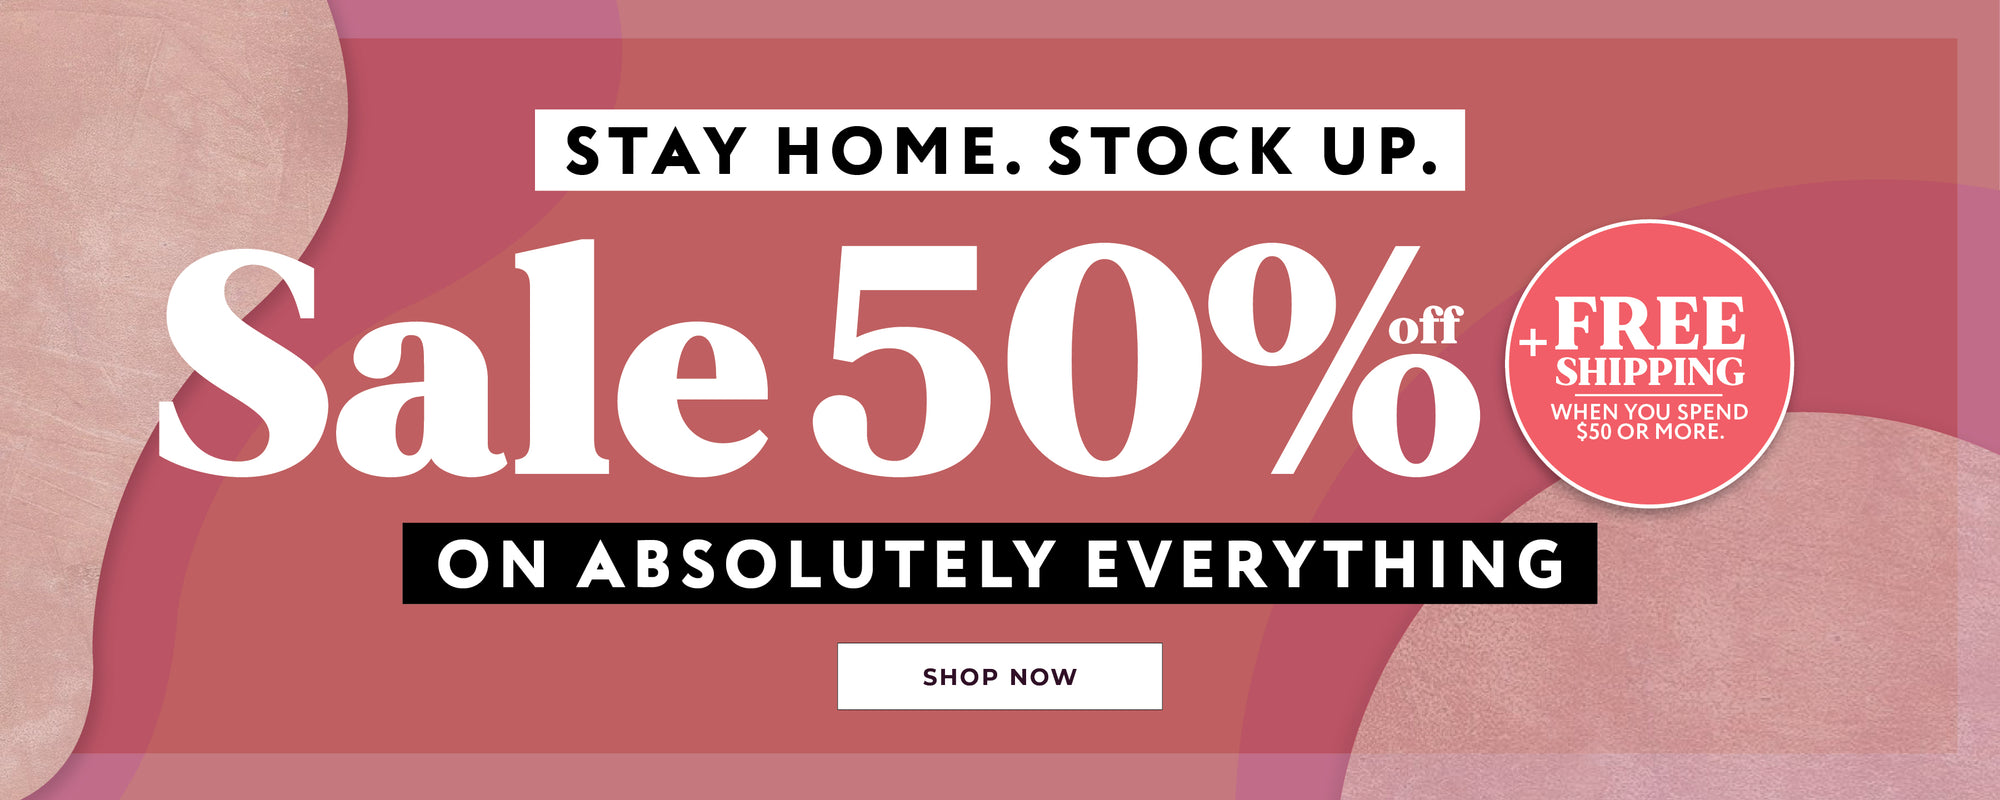 Urban Planet | Stay Home. Stock Up. 50% Off + Free Shipping on orders over $50